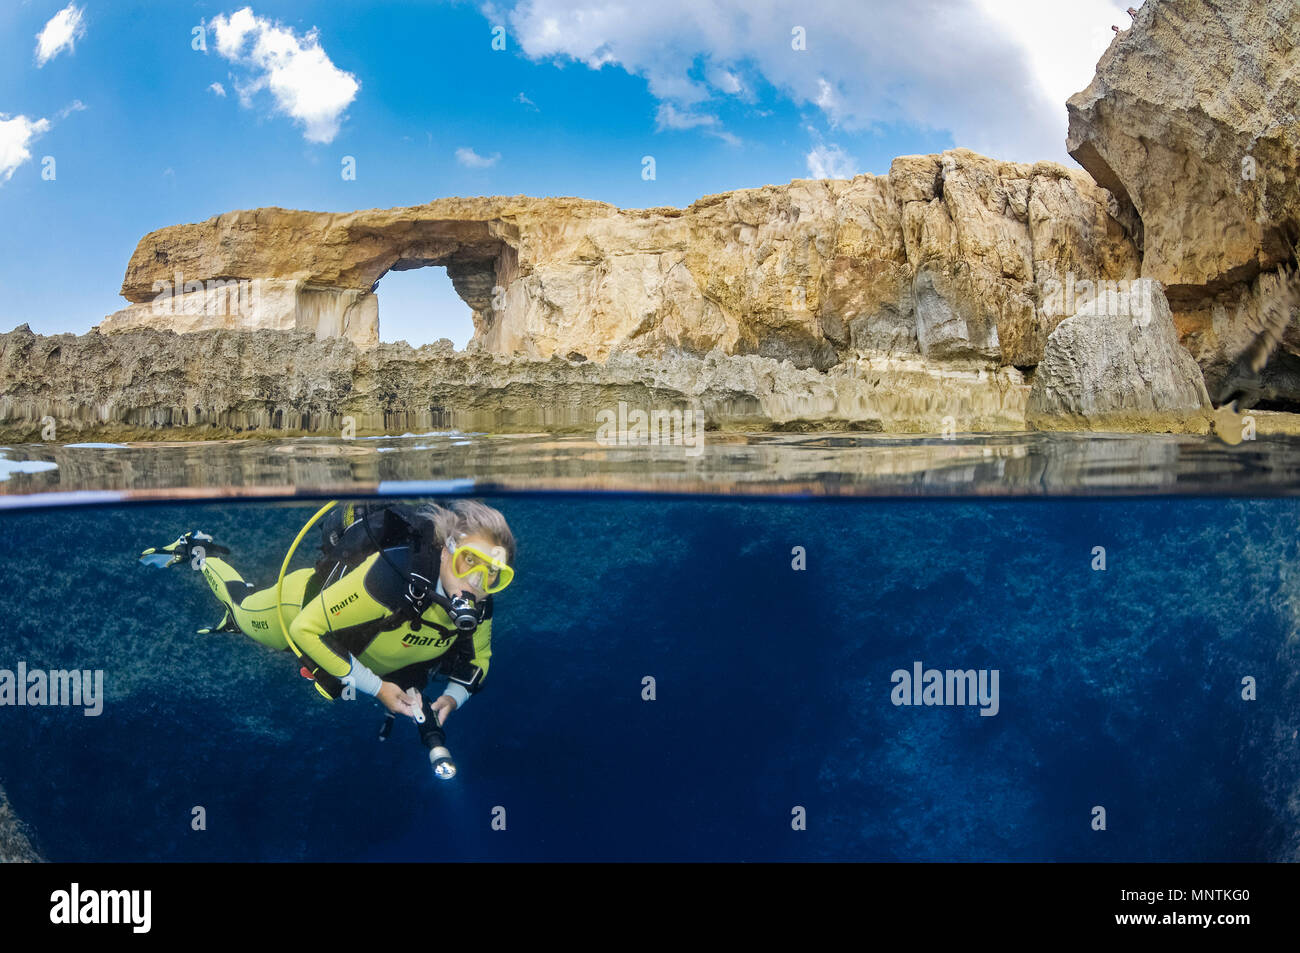 Azure Window, or Dwejra Window, and woman scuba diver in Blue Hole, Gozo, Malta, Mediterranean Sea, Atlantic Ocean, MR - Stock Image